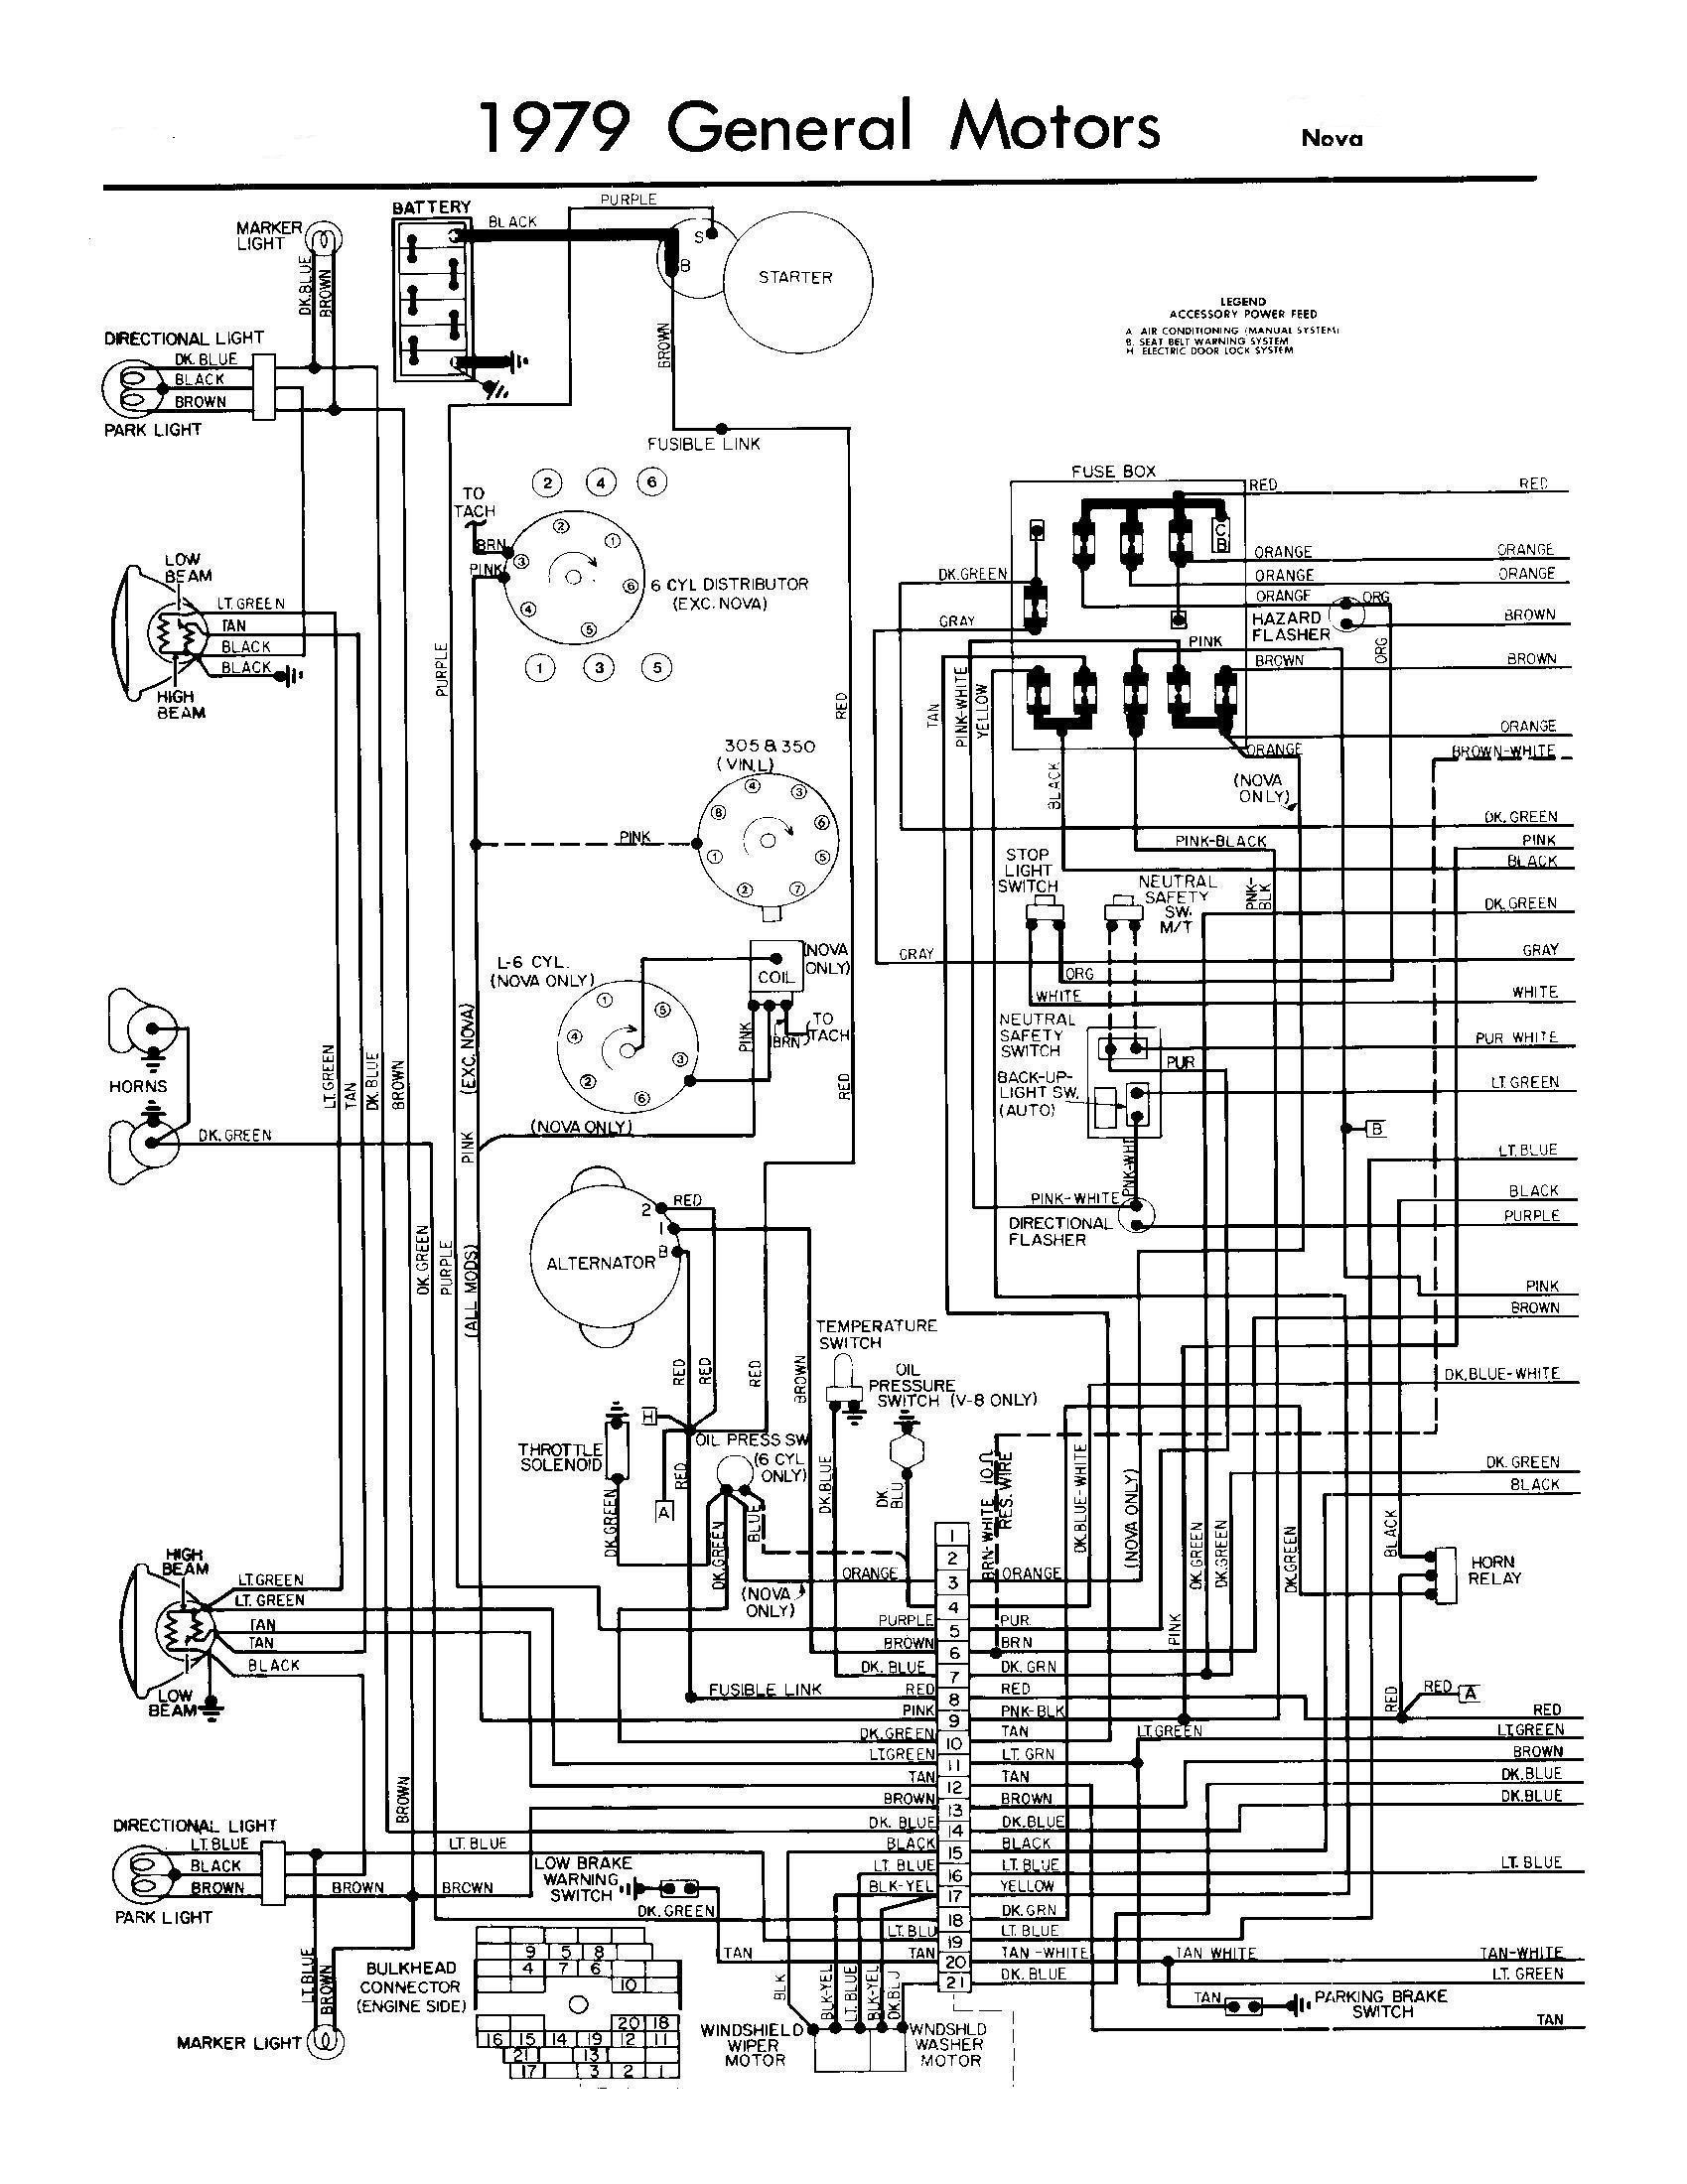 wiring diagrams all years chevette wiring diagram